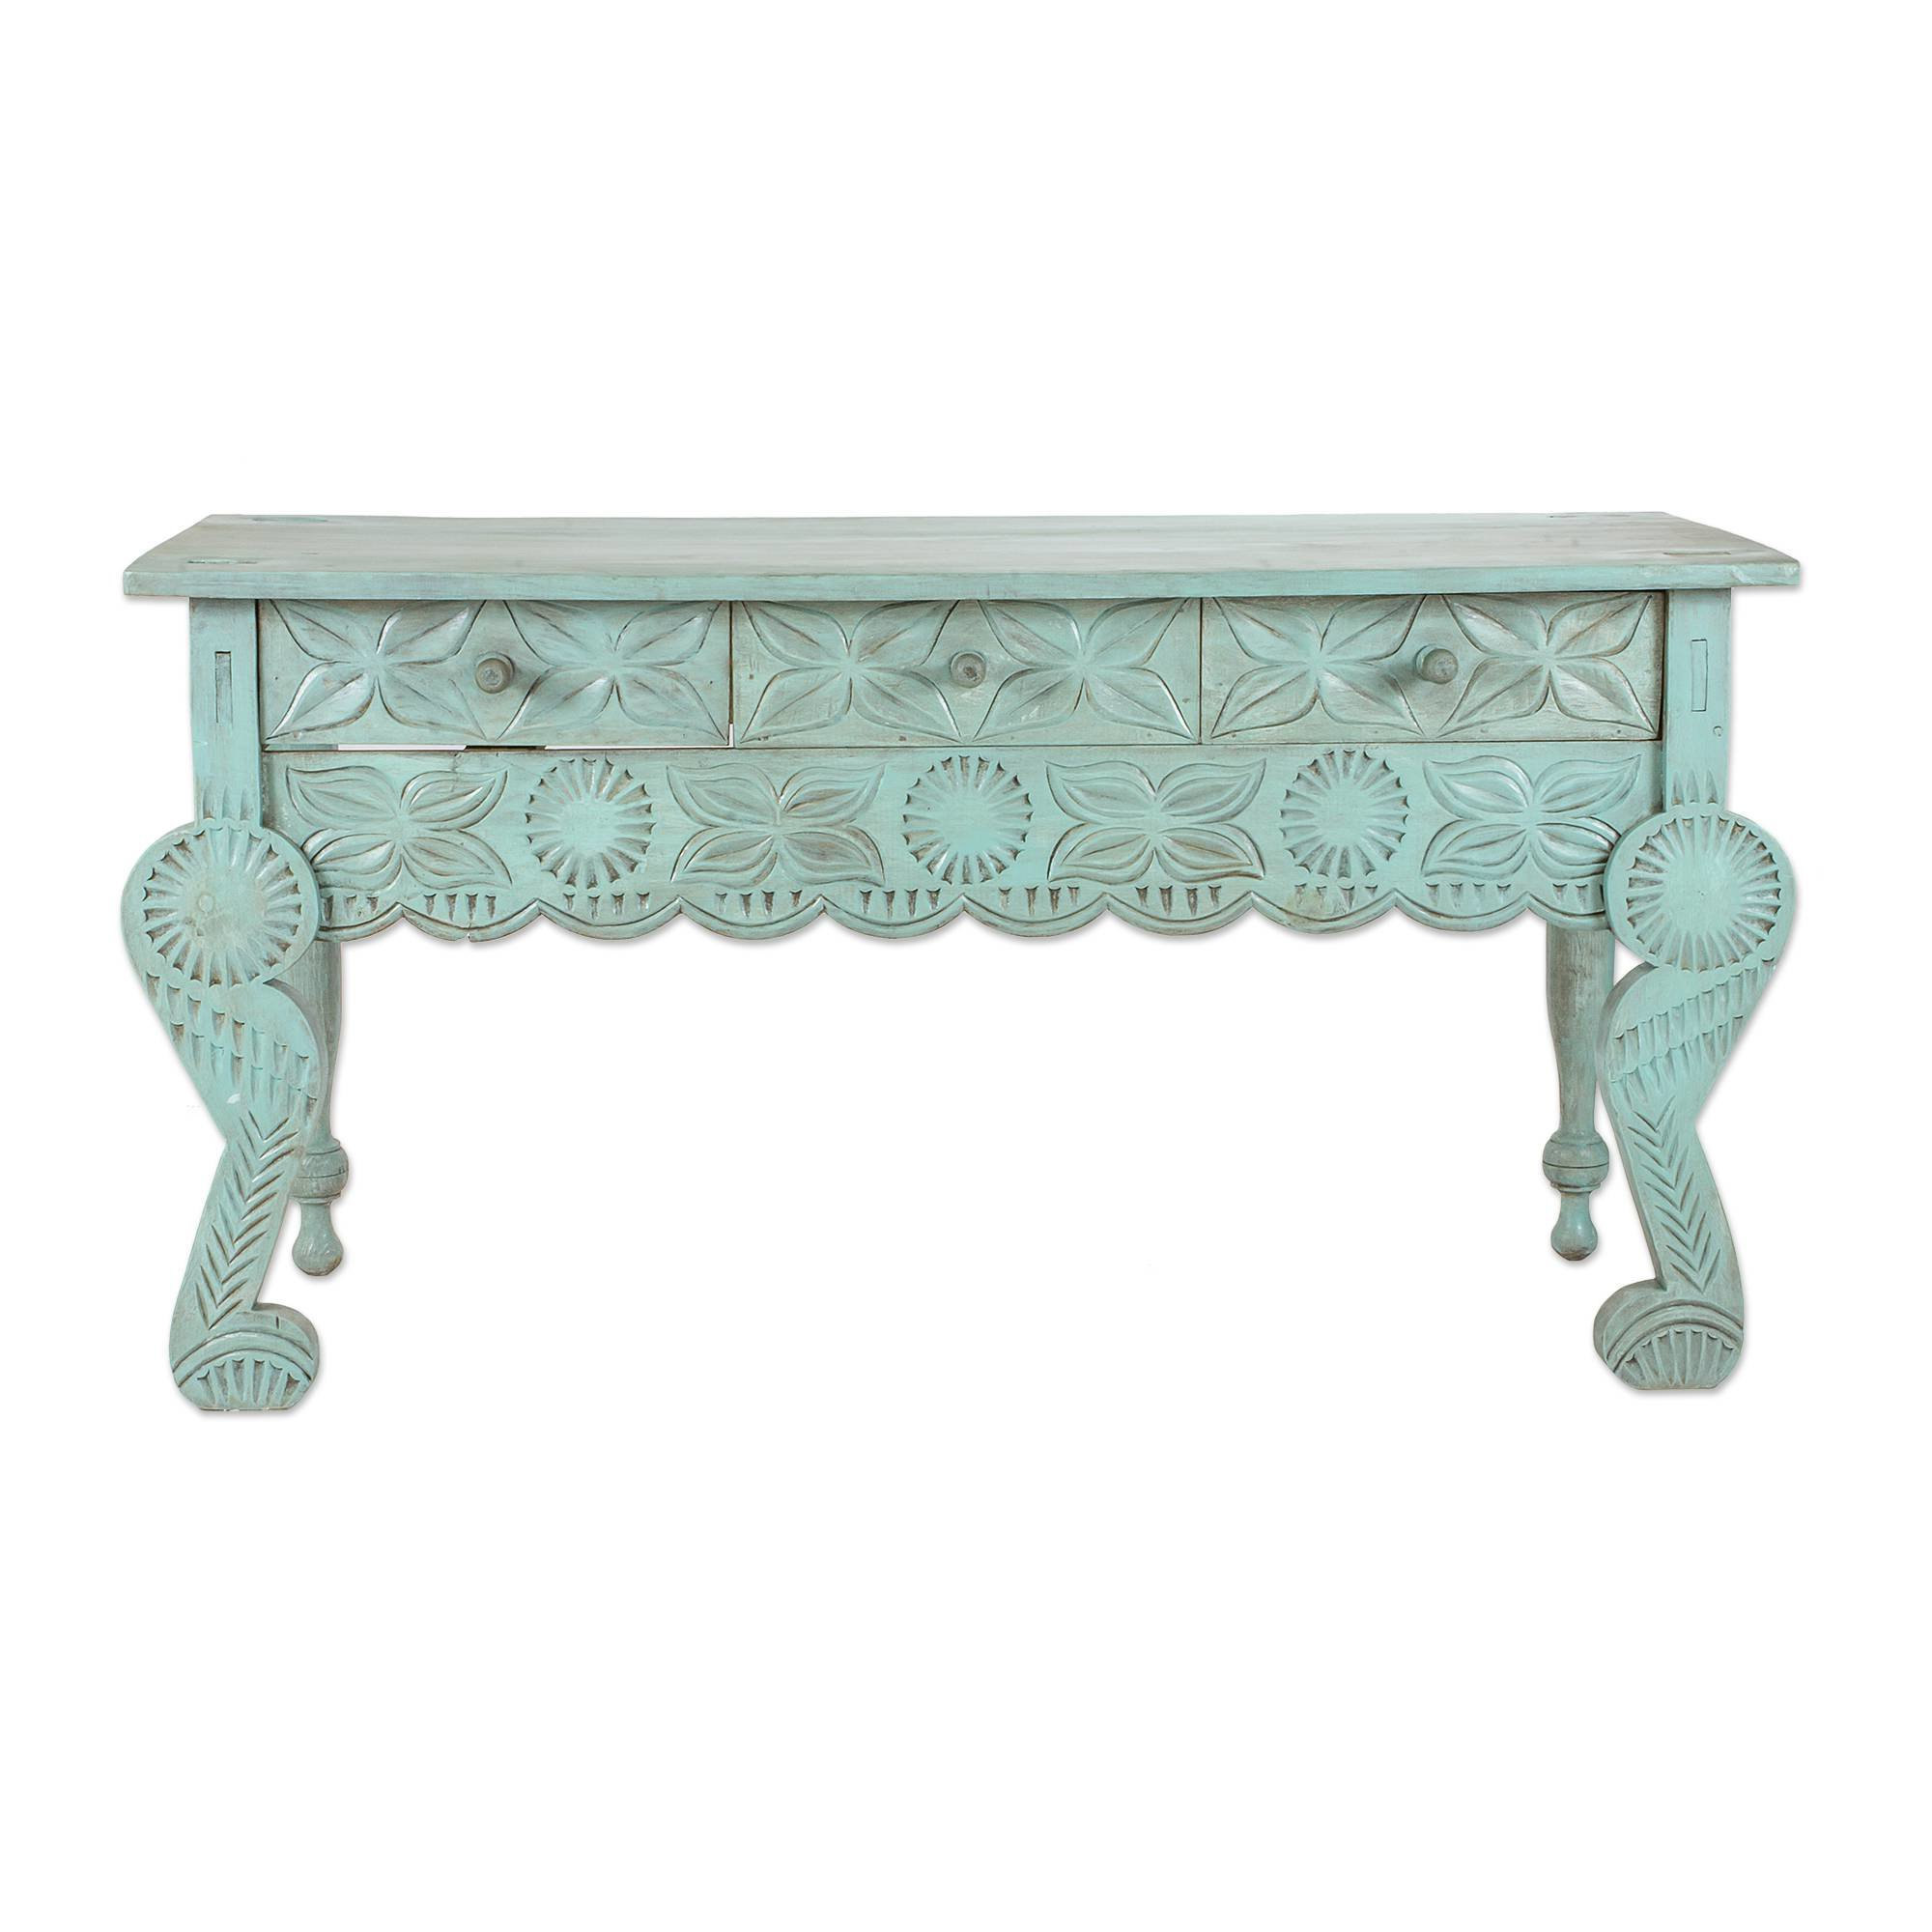 Bloomsbury Market Liddel Elegant Patina Wood Console Table | Wayfair Pertaining To Mix Patina Metal Frame Console Tables (View 16 of 20)